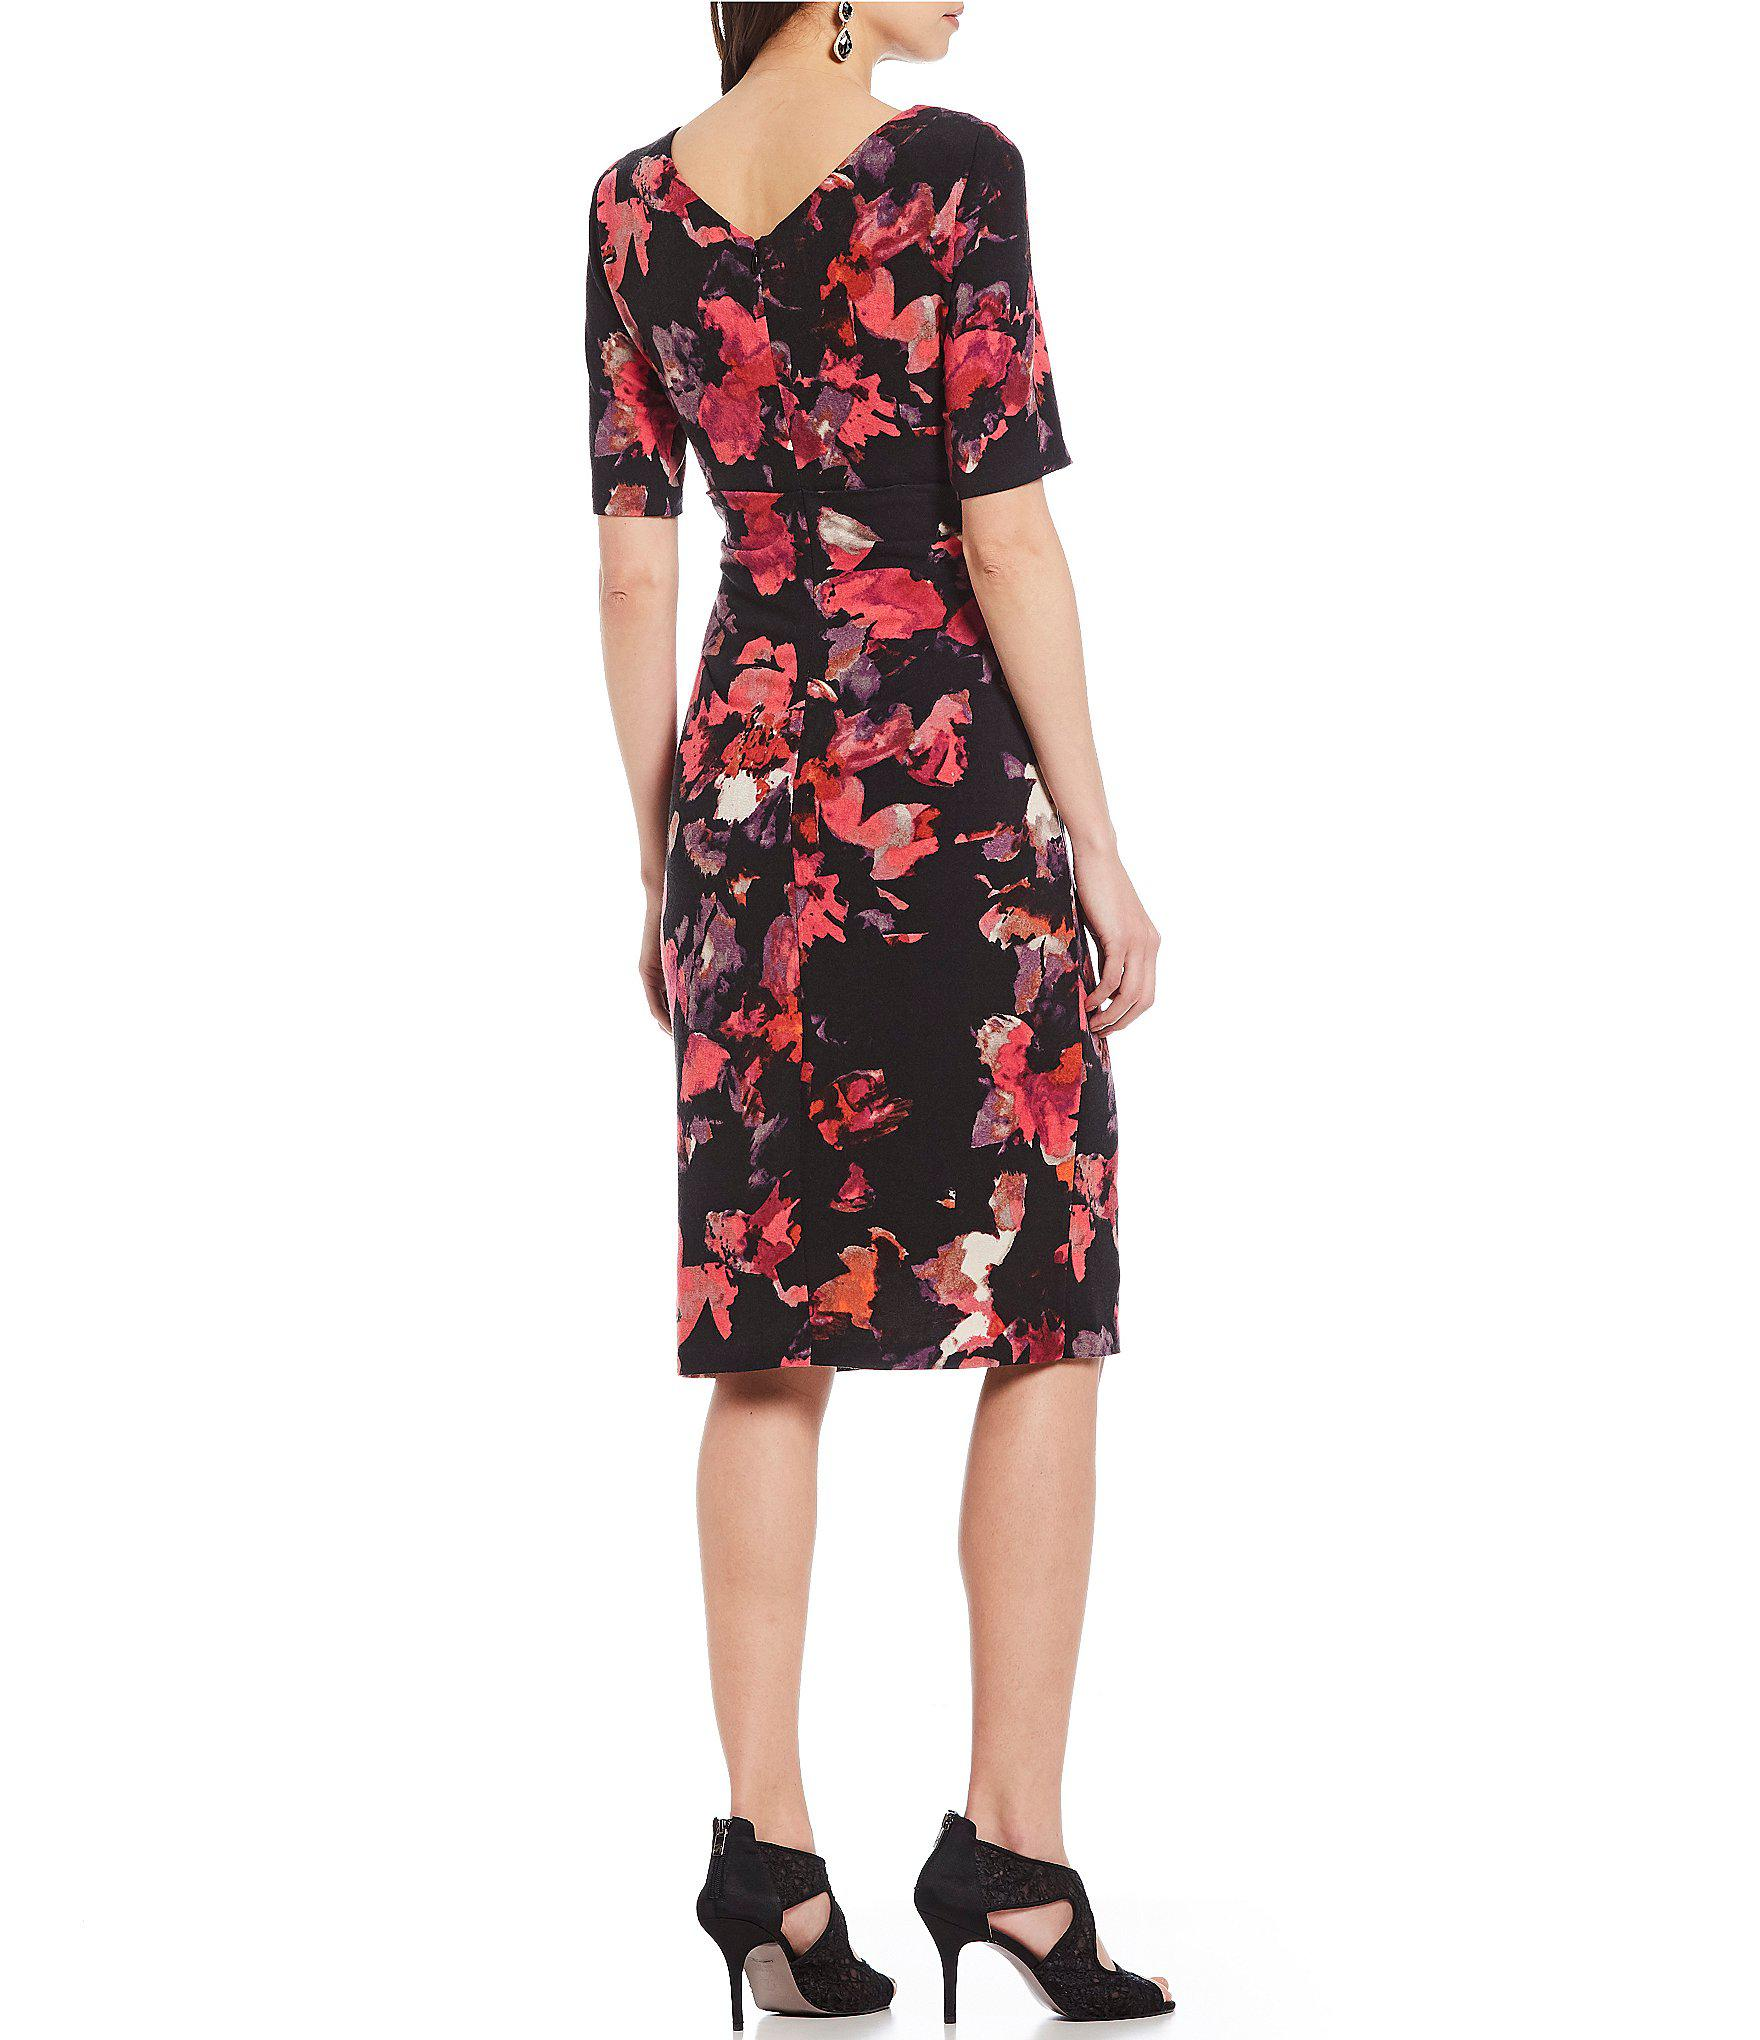 4d1f4d0797a Adrianna Papell - Red Cowl Neck Floral Print Knit Sheath Dress - Lyst. View  fullscreen